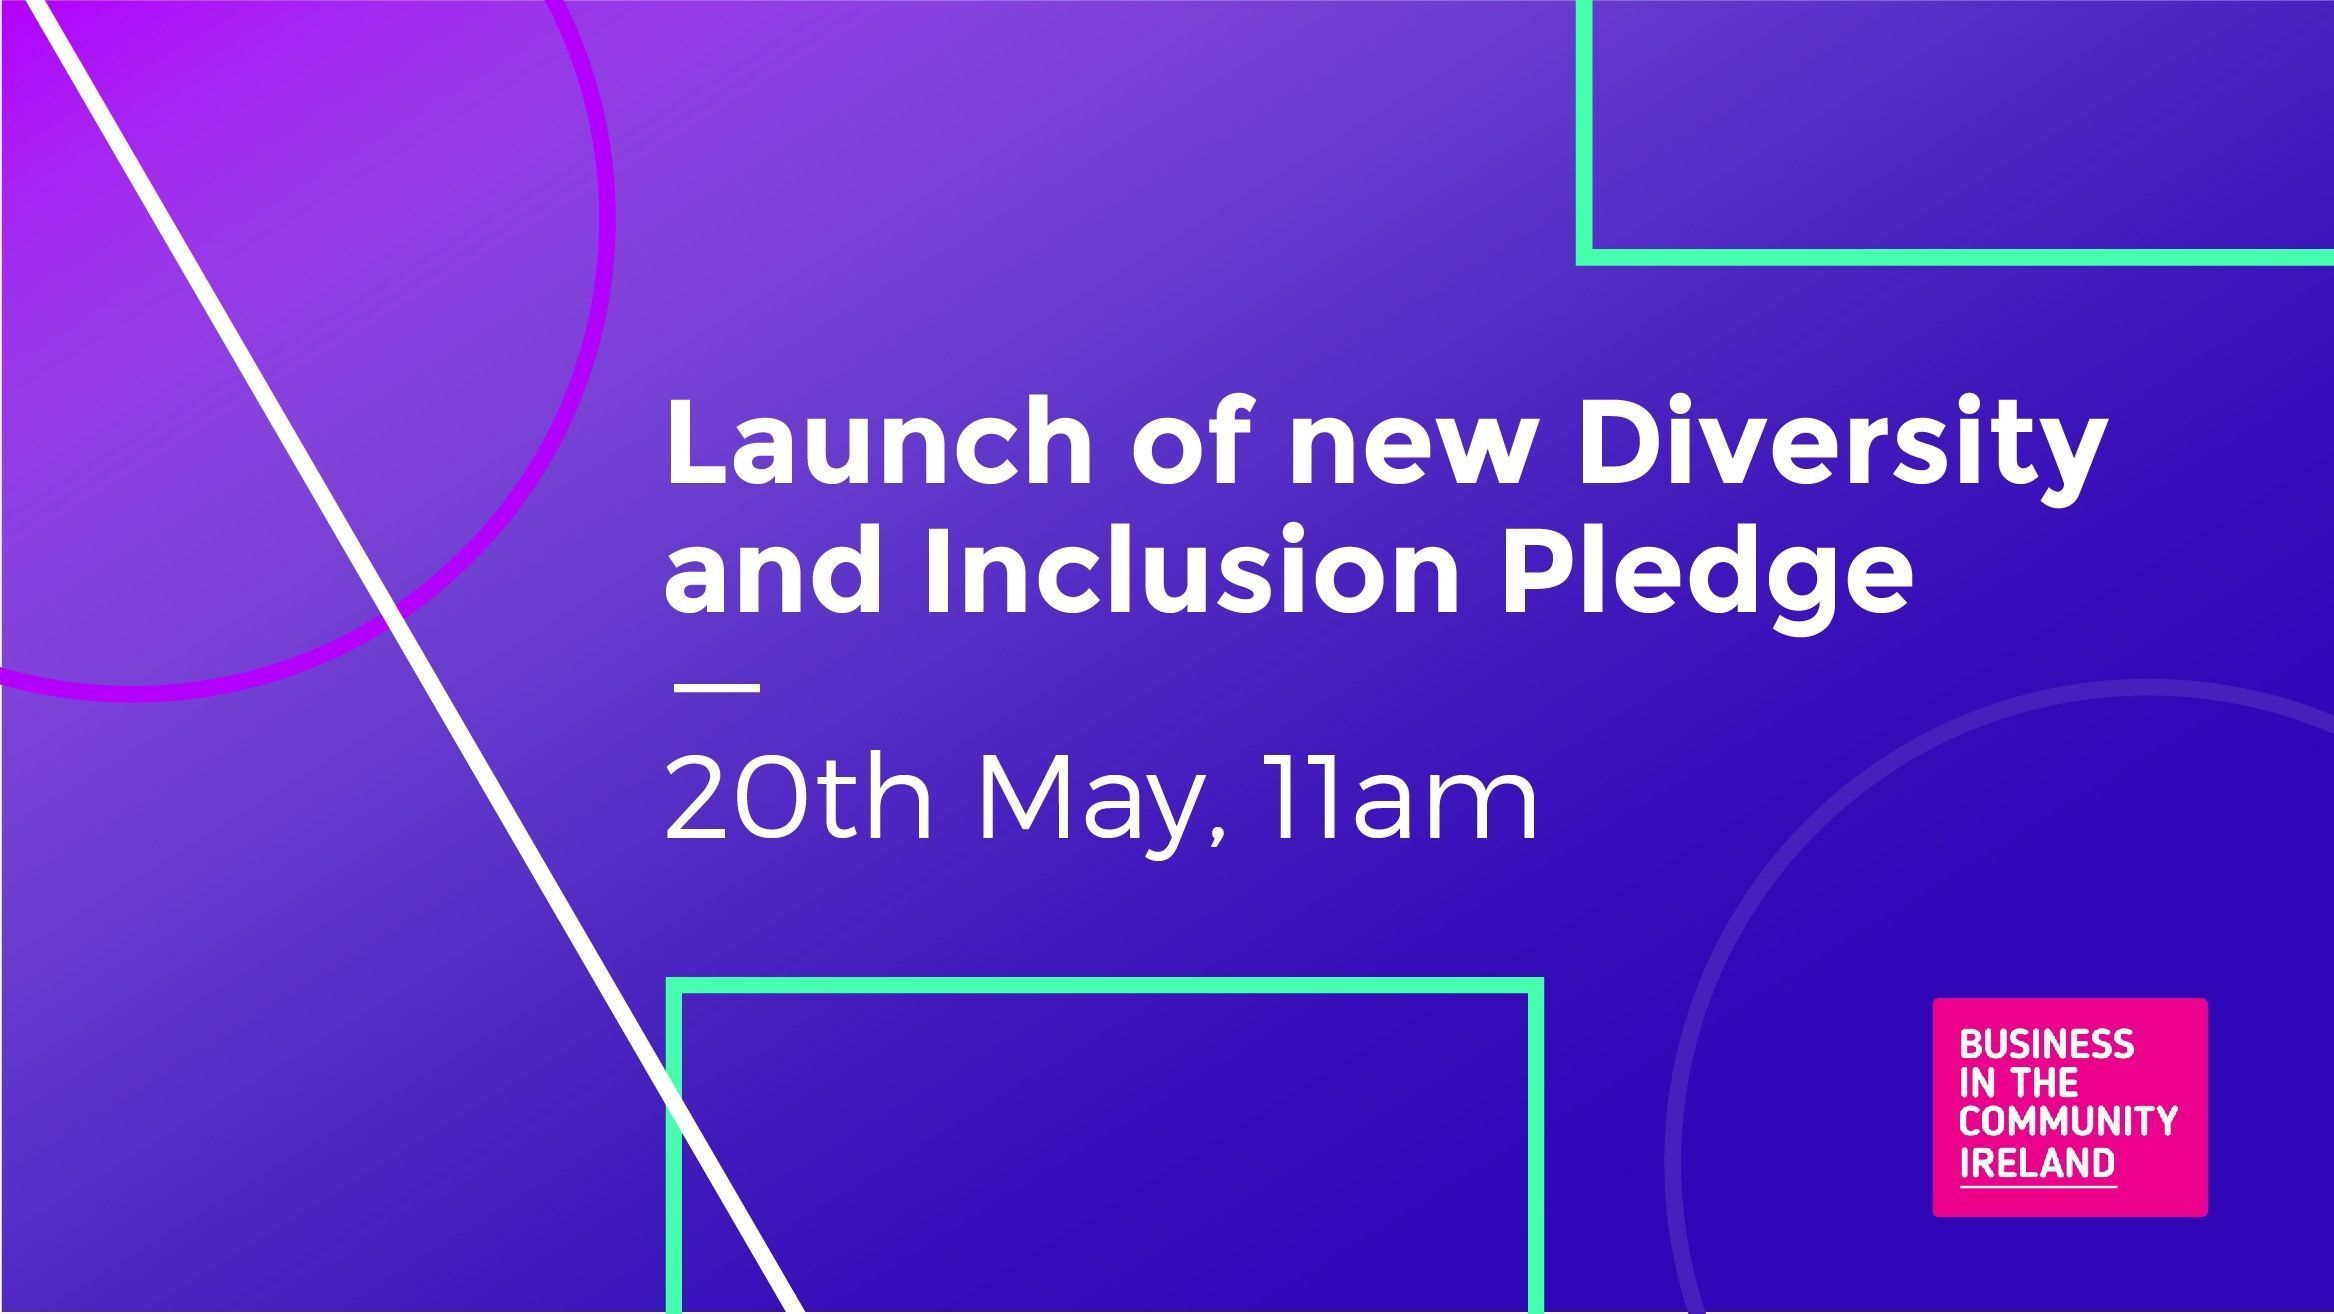 45 of Ireland's largest companies sign up to ELEVATE, the Business in the Community Ireland (BITCI) pledge to improve diversity and inclusivity in Irish workplaces.